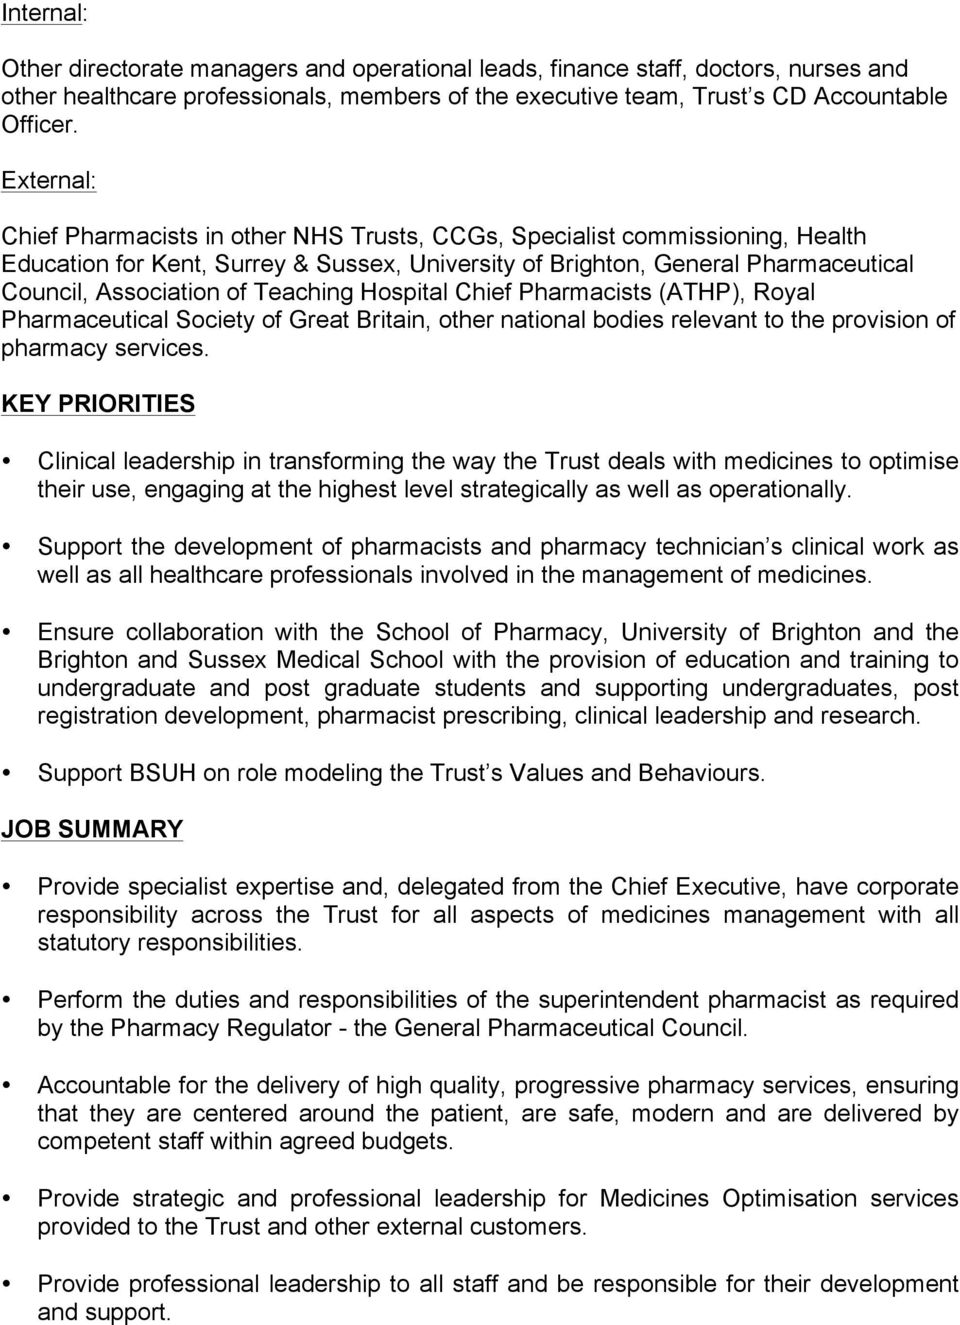 Teaching Hospital Chief Pharmacists (ATHP), Royal Pharmaceutical Society of Great Britain, other national bodies relevant to the provision of pharmacy services.